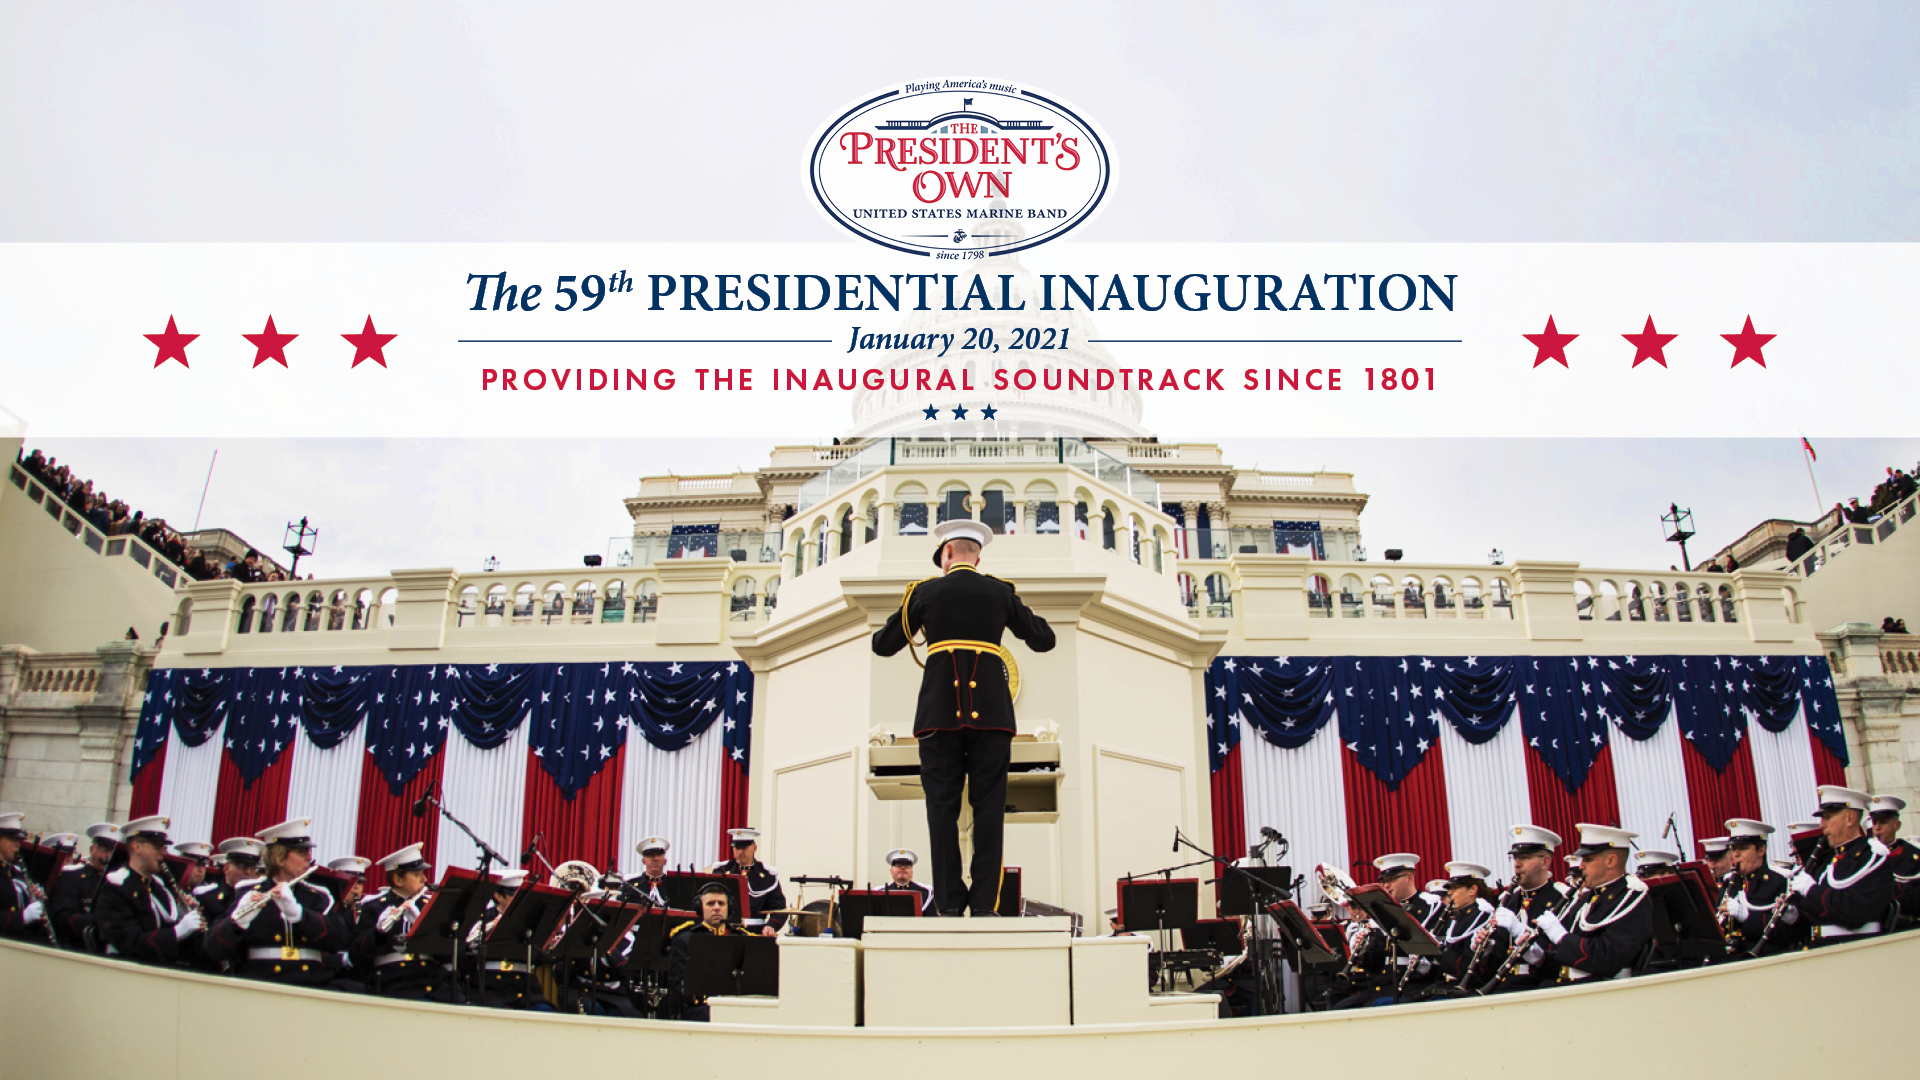 The President's Own United States Marine Band at the Presidential Inauguration of 2021